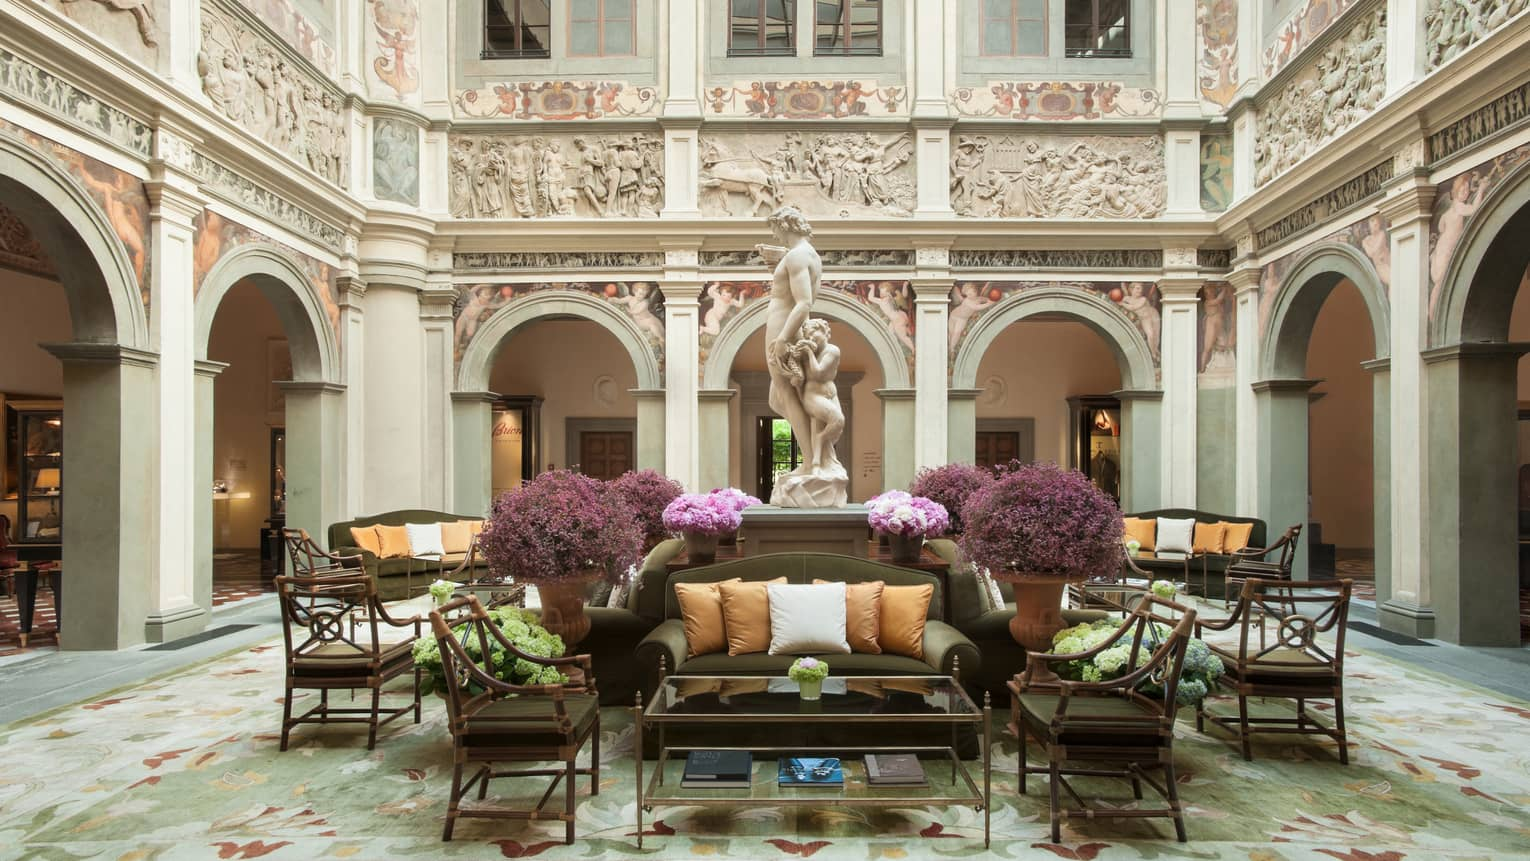 Hotel lobby sofas, chairs under statue, high ceilings and ornate walls